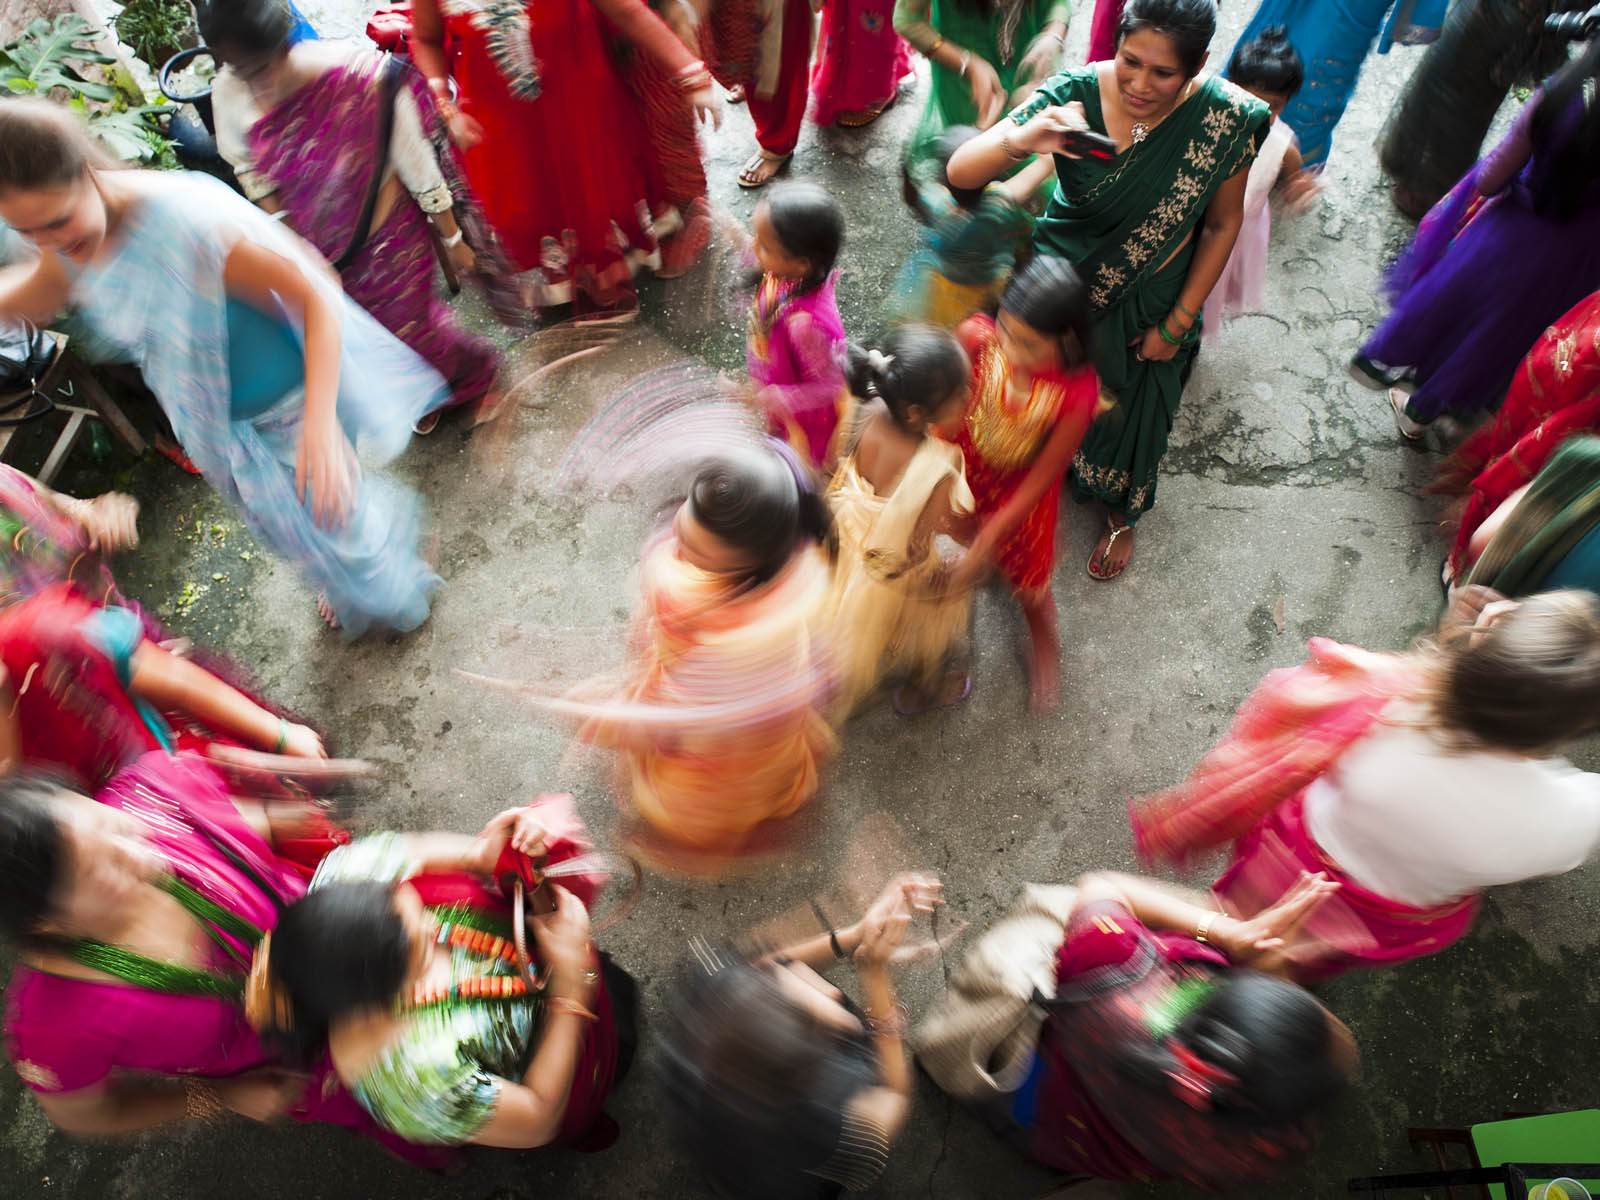 I was invited to photograph a party at the local Women's Empowerment group. It was celebrating the Hindu festival of Teej. It was things like this that I would not have gotten to be part of if I wasn't volunteering!